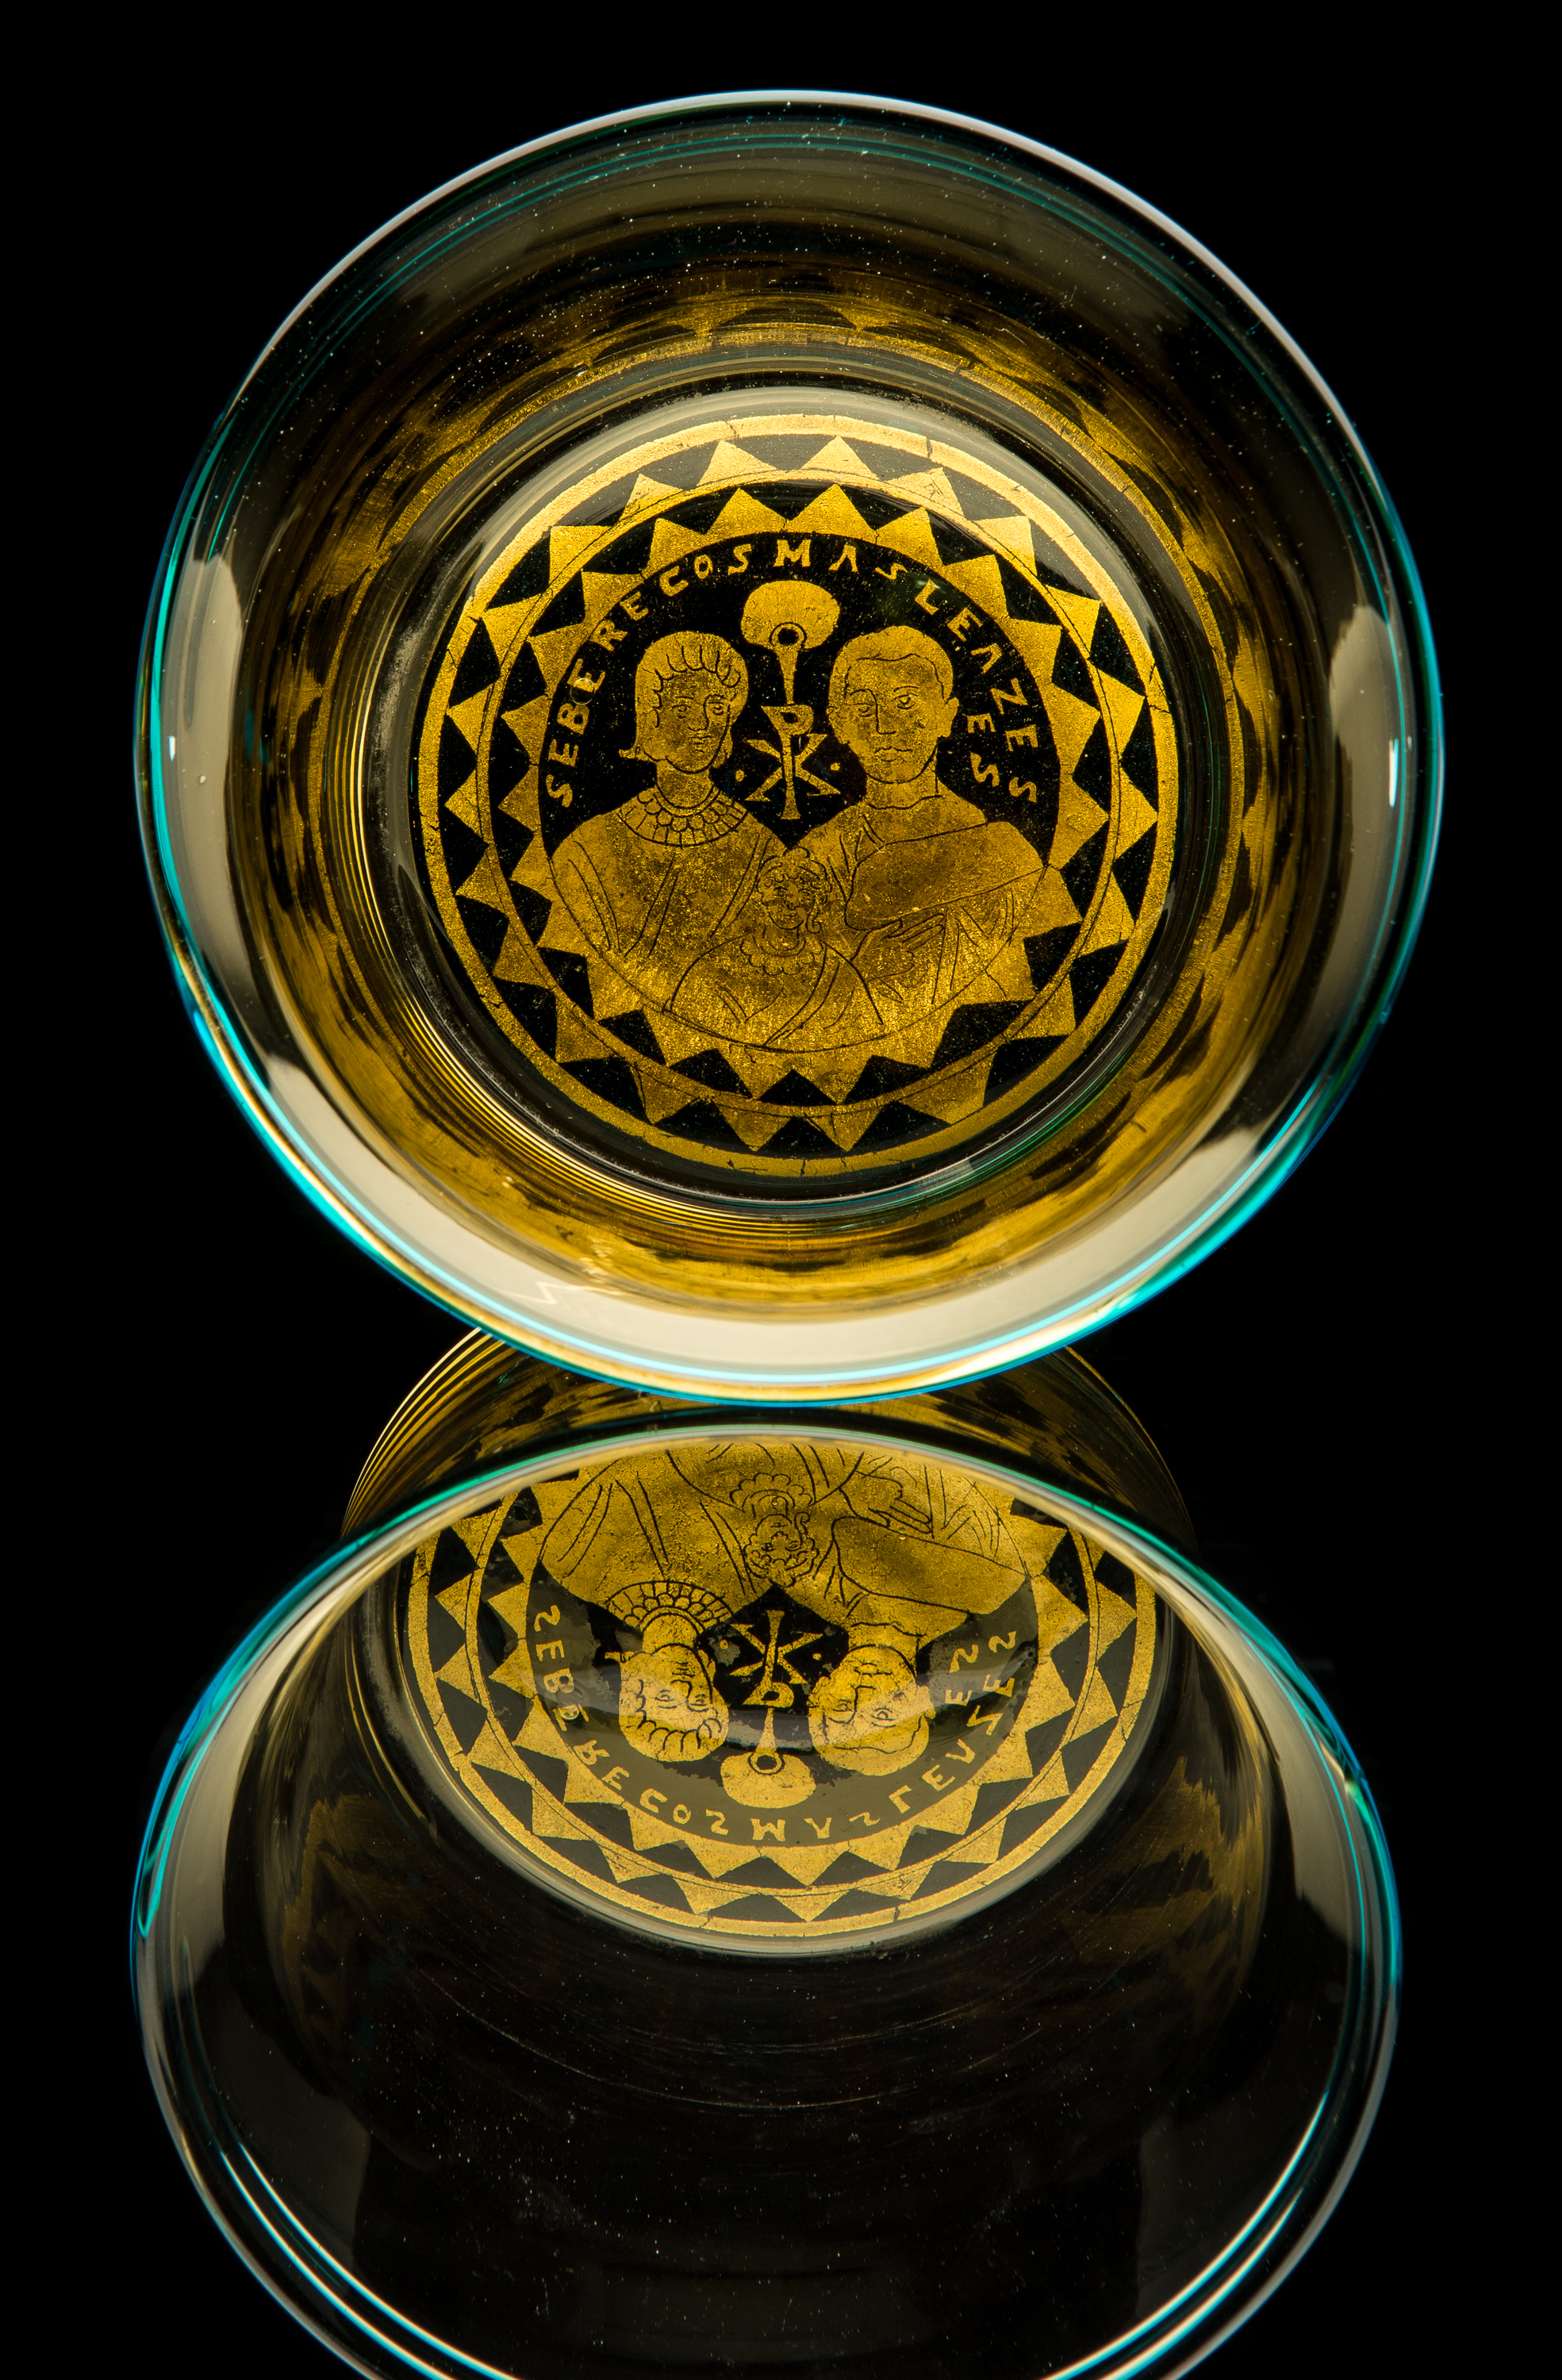 Fratelli Toso,  Gold Glass Barovier Blue Rim and Base  (circa 1878, glass, 5 inches), VV.765